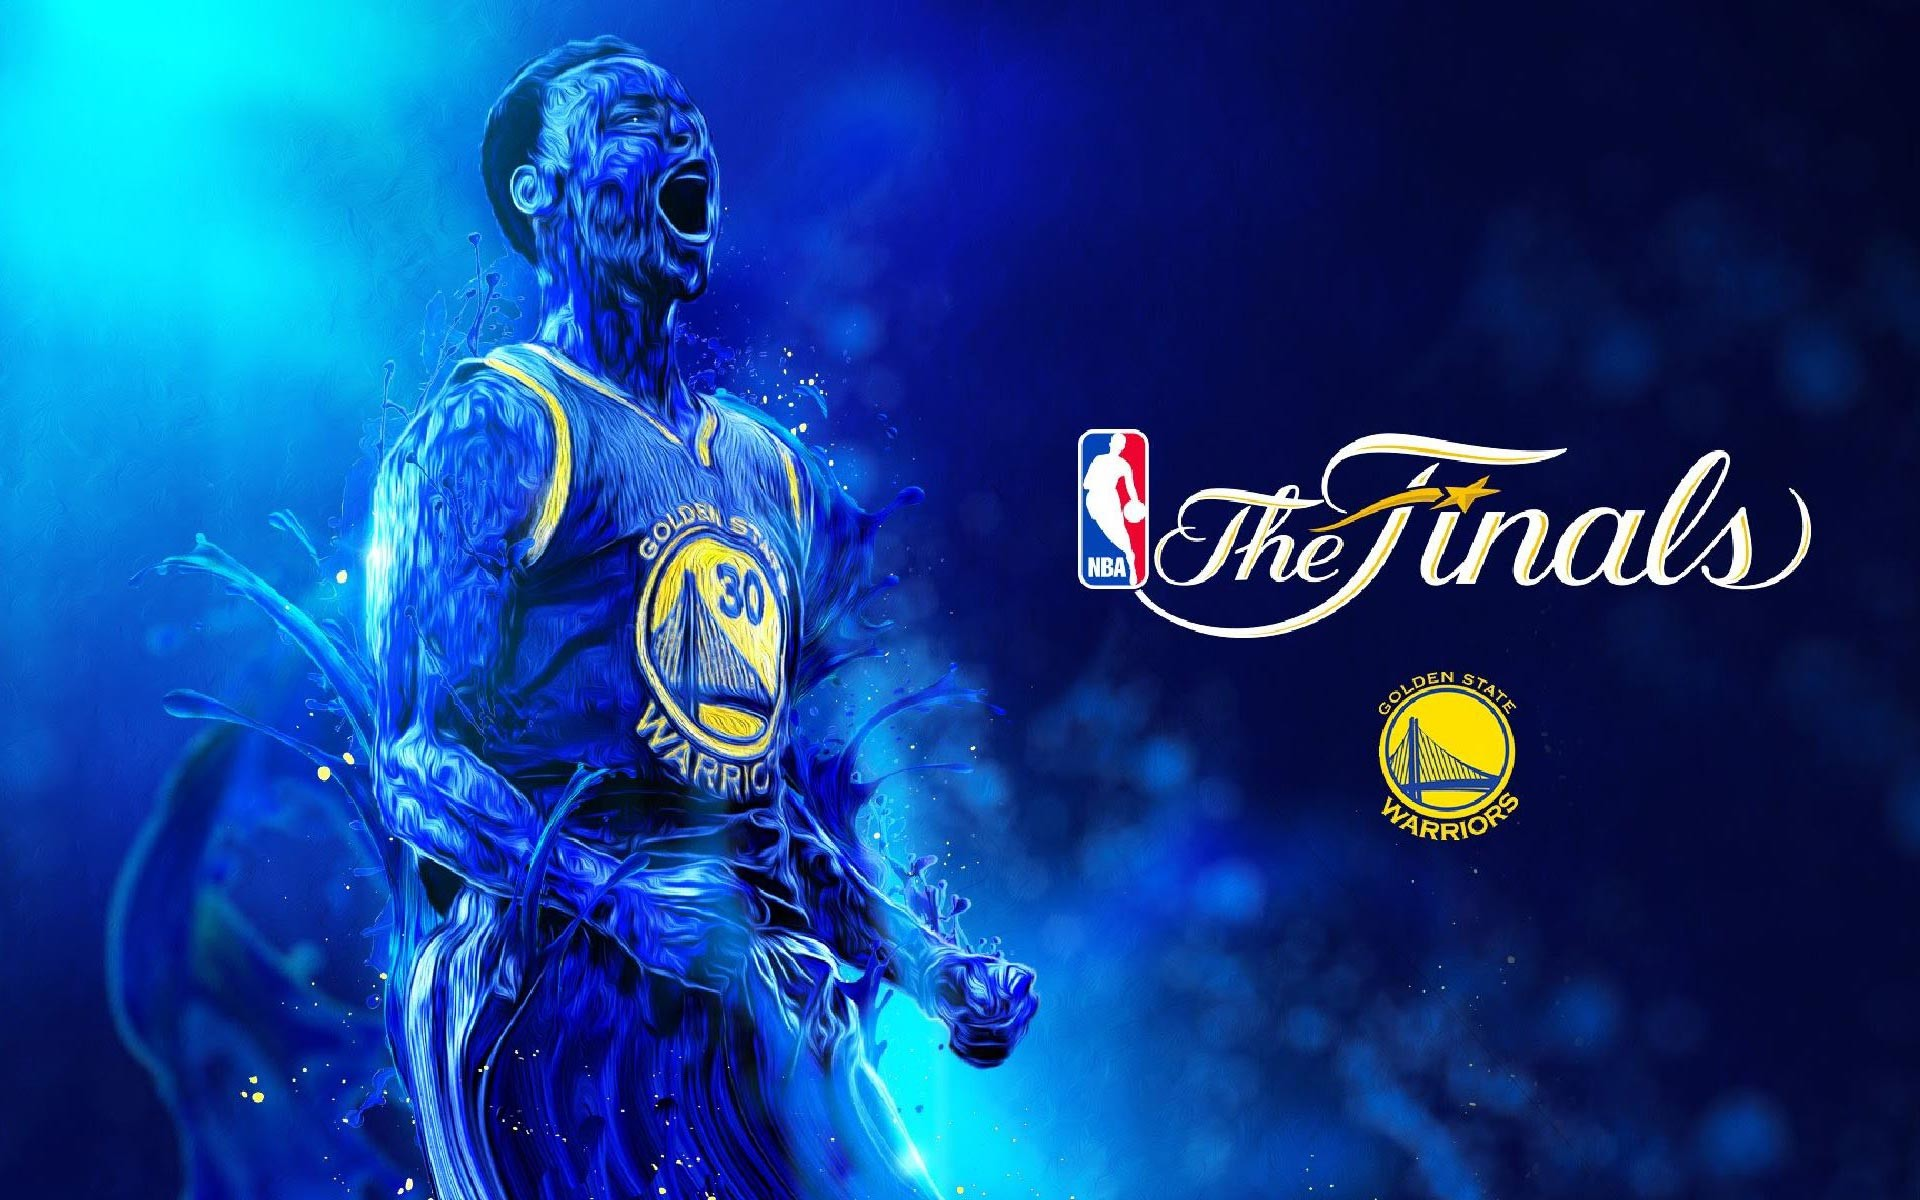 golden state warriors hd wallpaper android